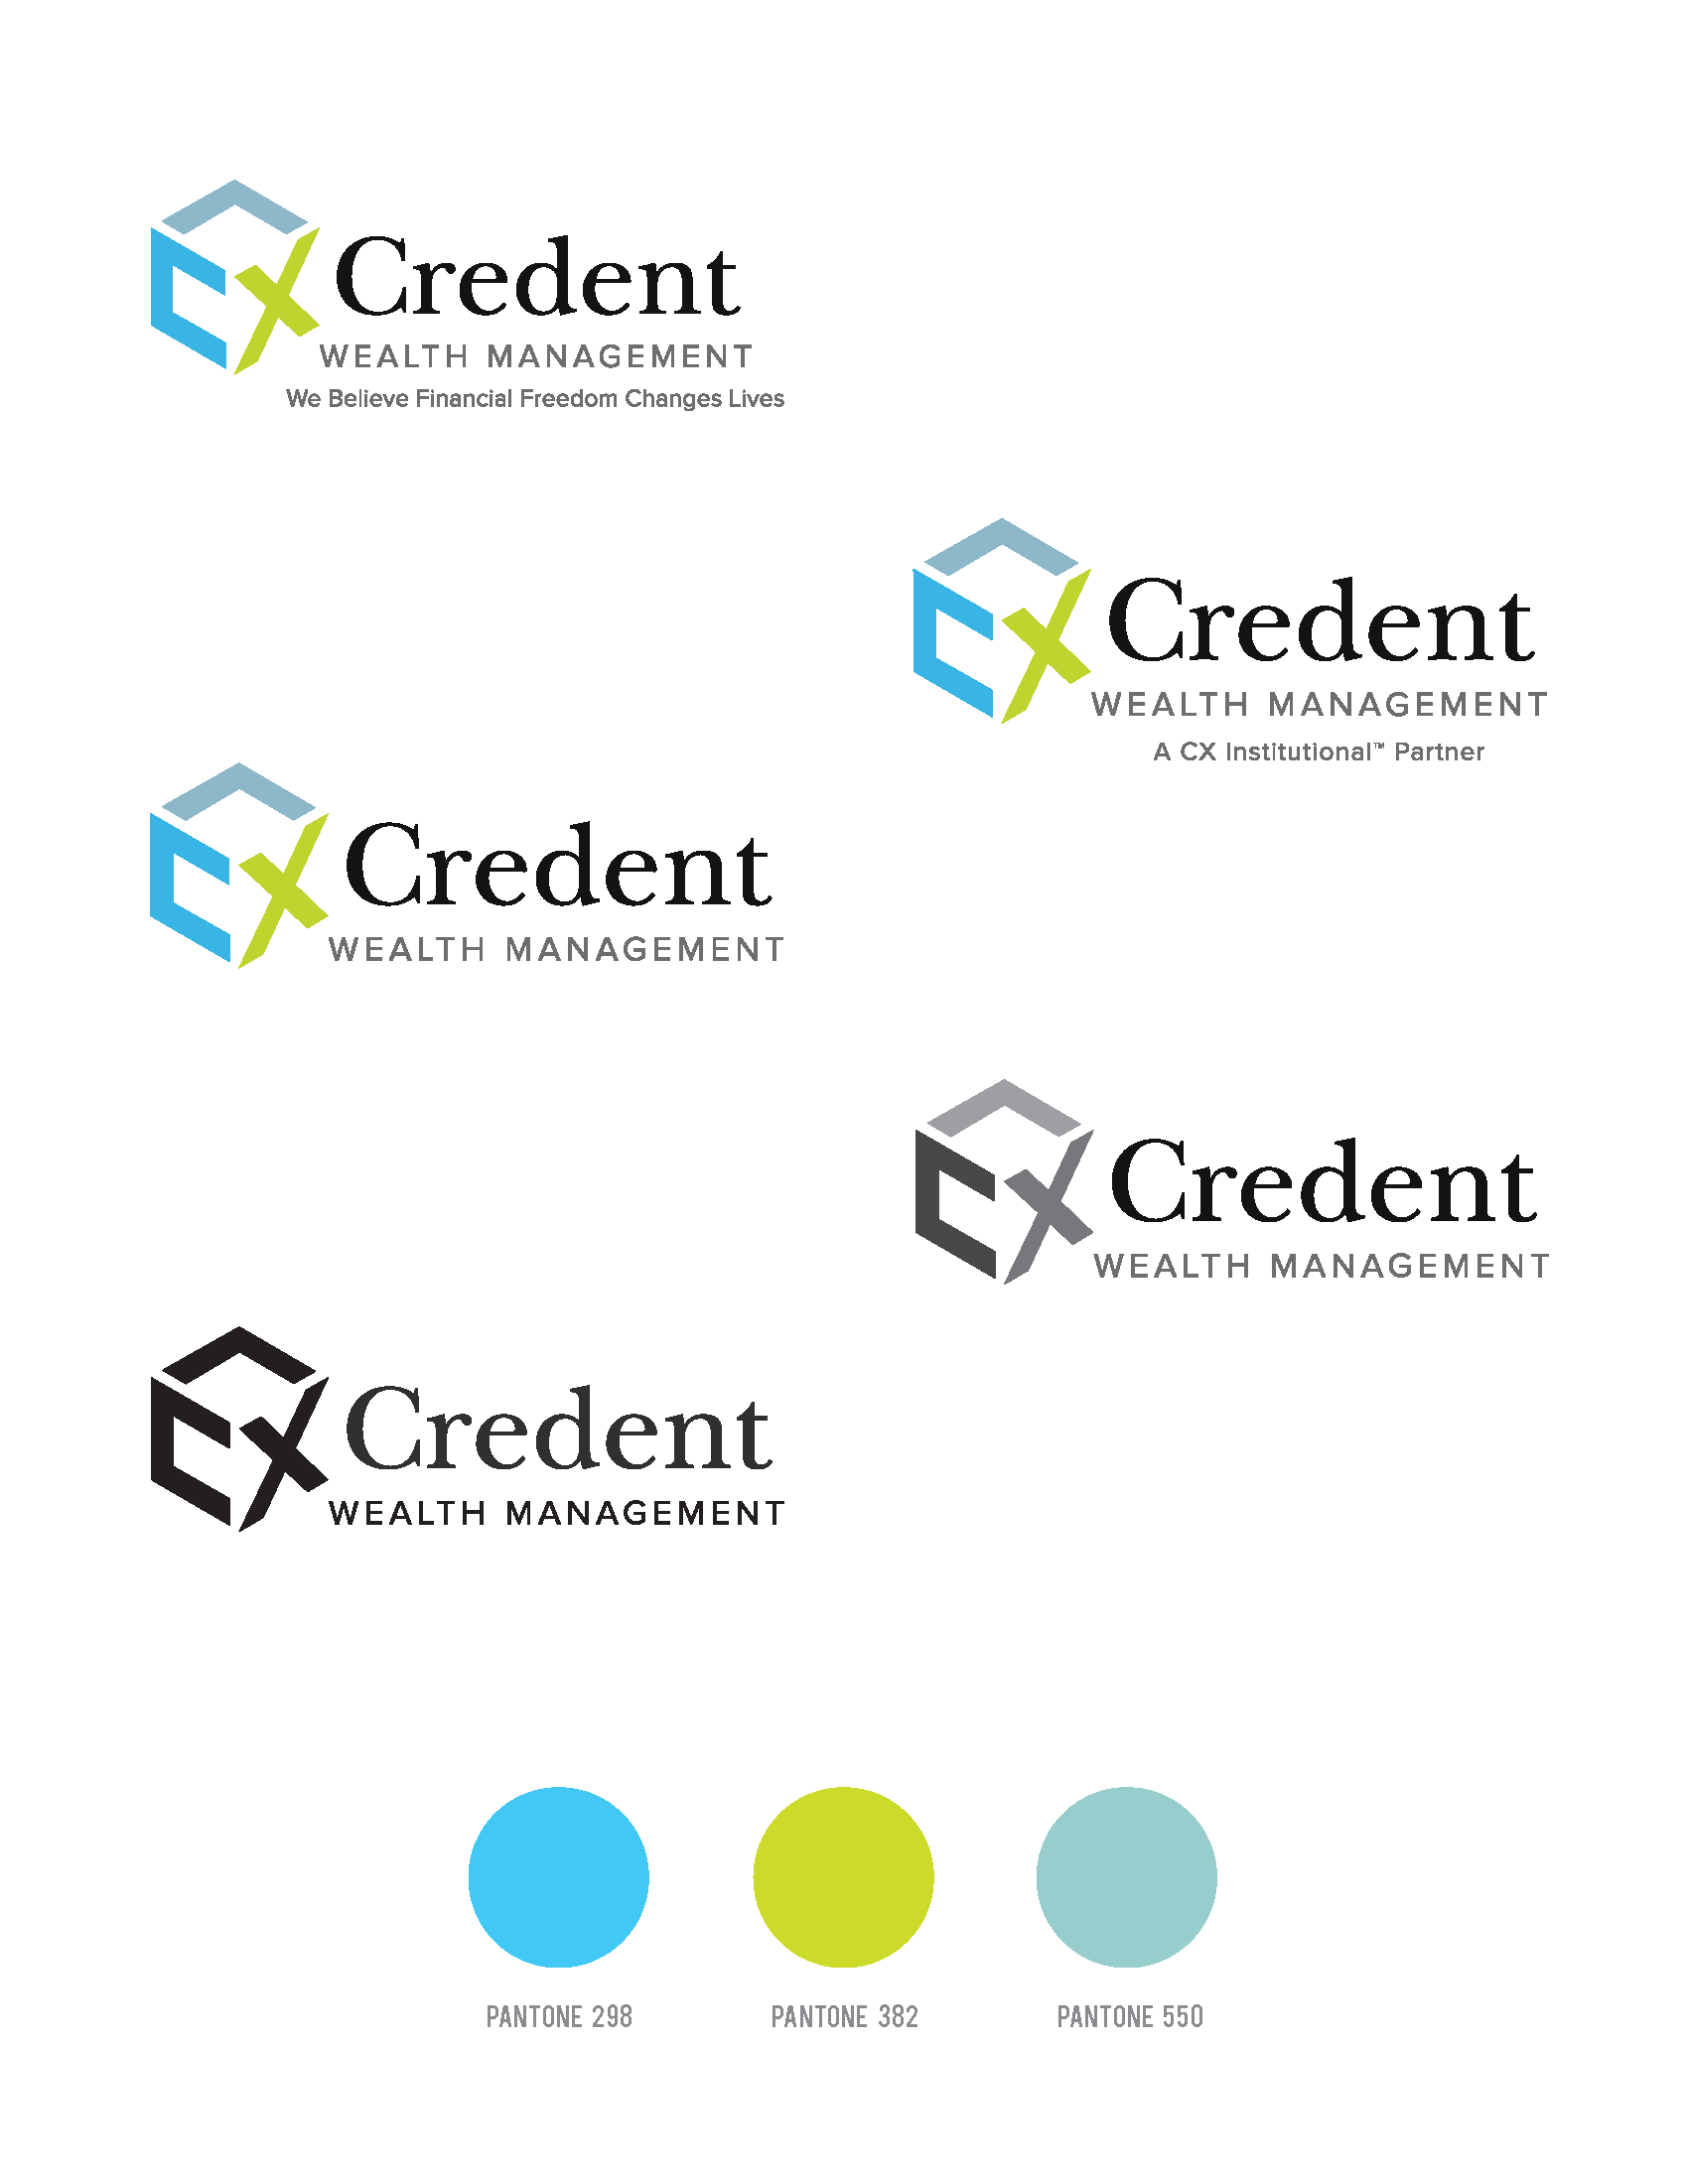 Credent Wealth Management Logo and Icon Design Submission